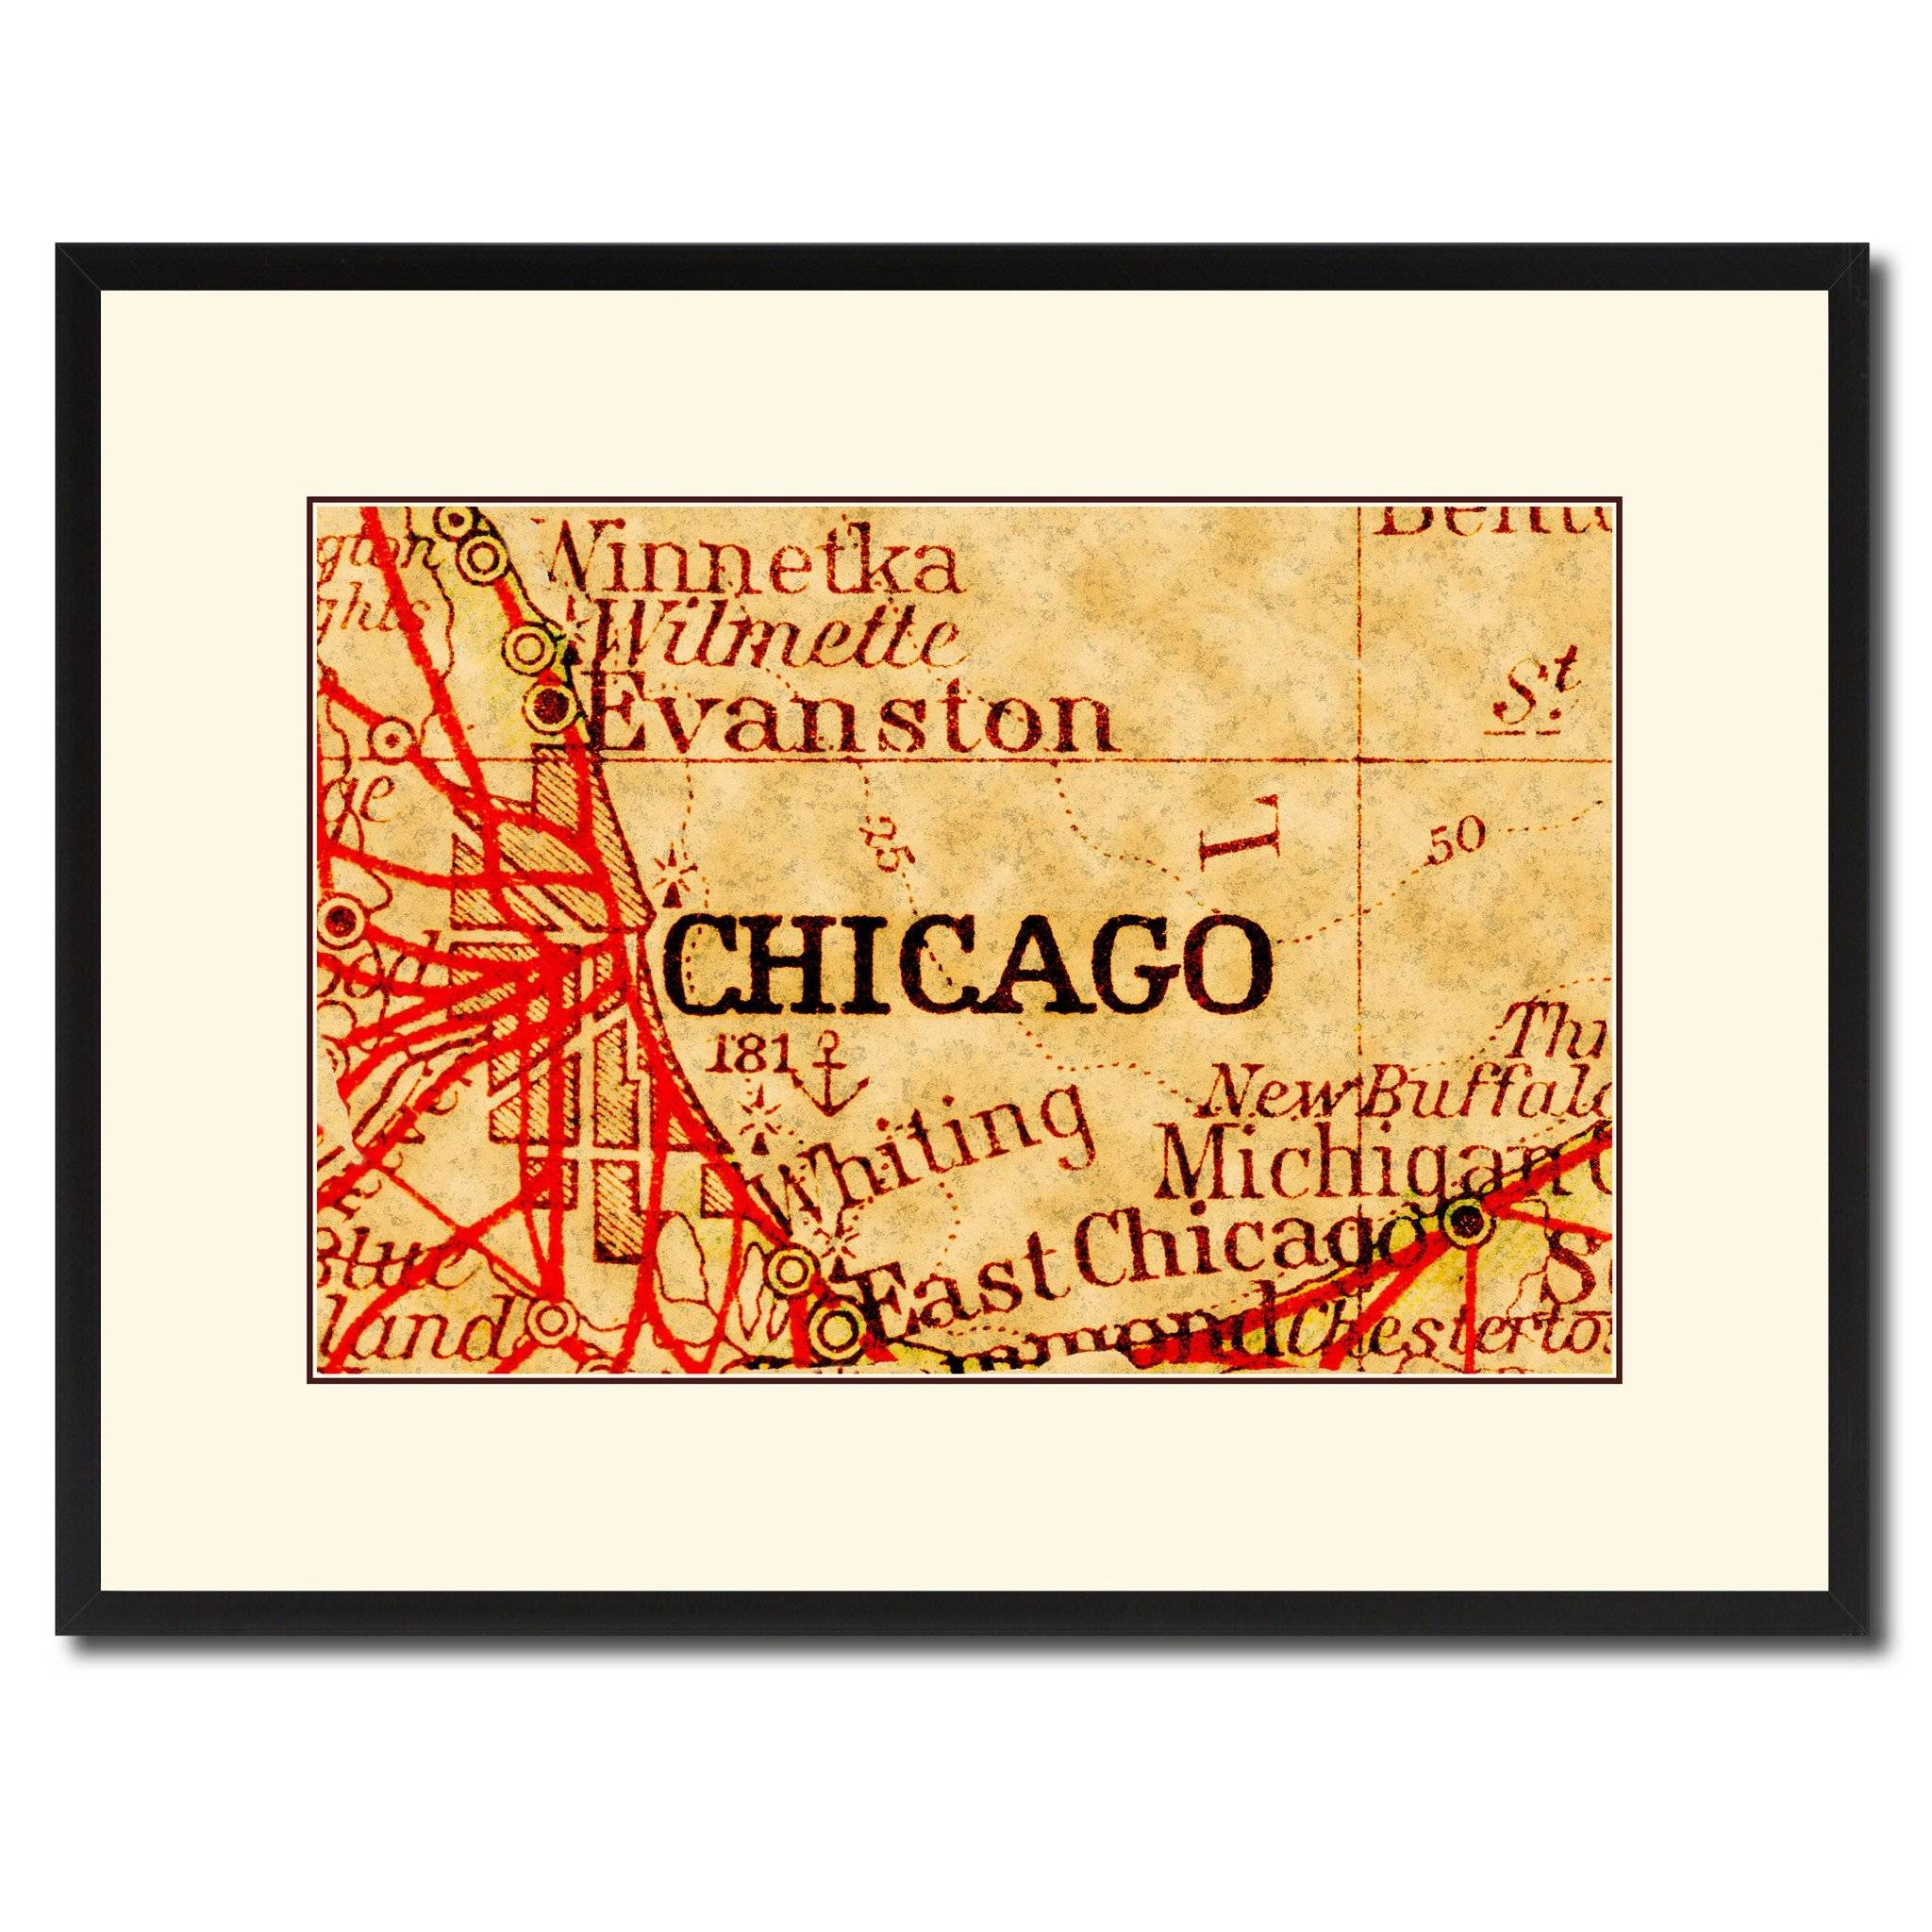 Chicago Illinois Vintage Antique Map Wall Art Home Decor Gift Within 2018 Vintage Map Wall Art (View 16 of 20)